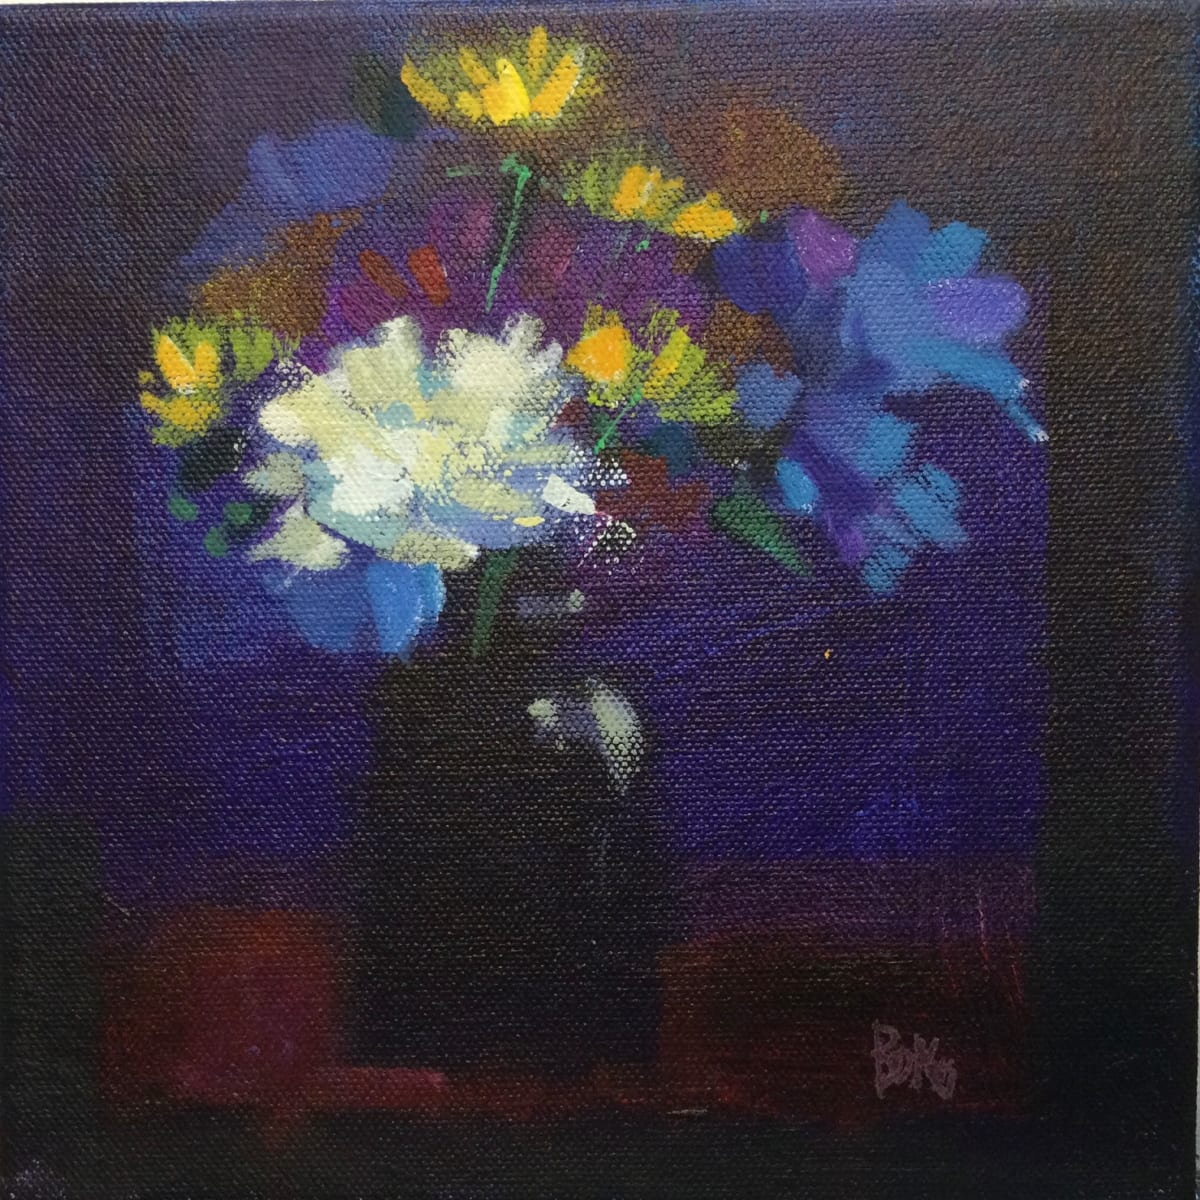 Evening blooms 1 by francis boag